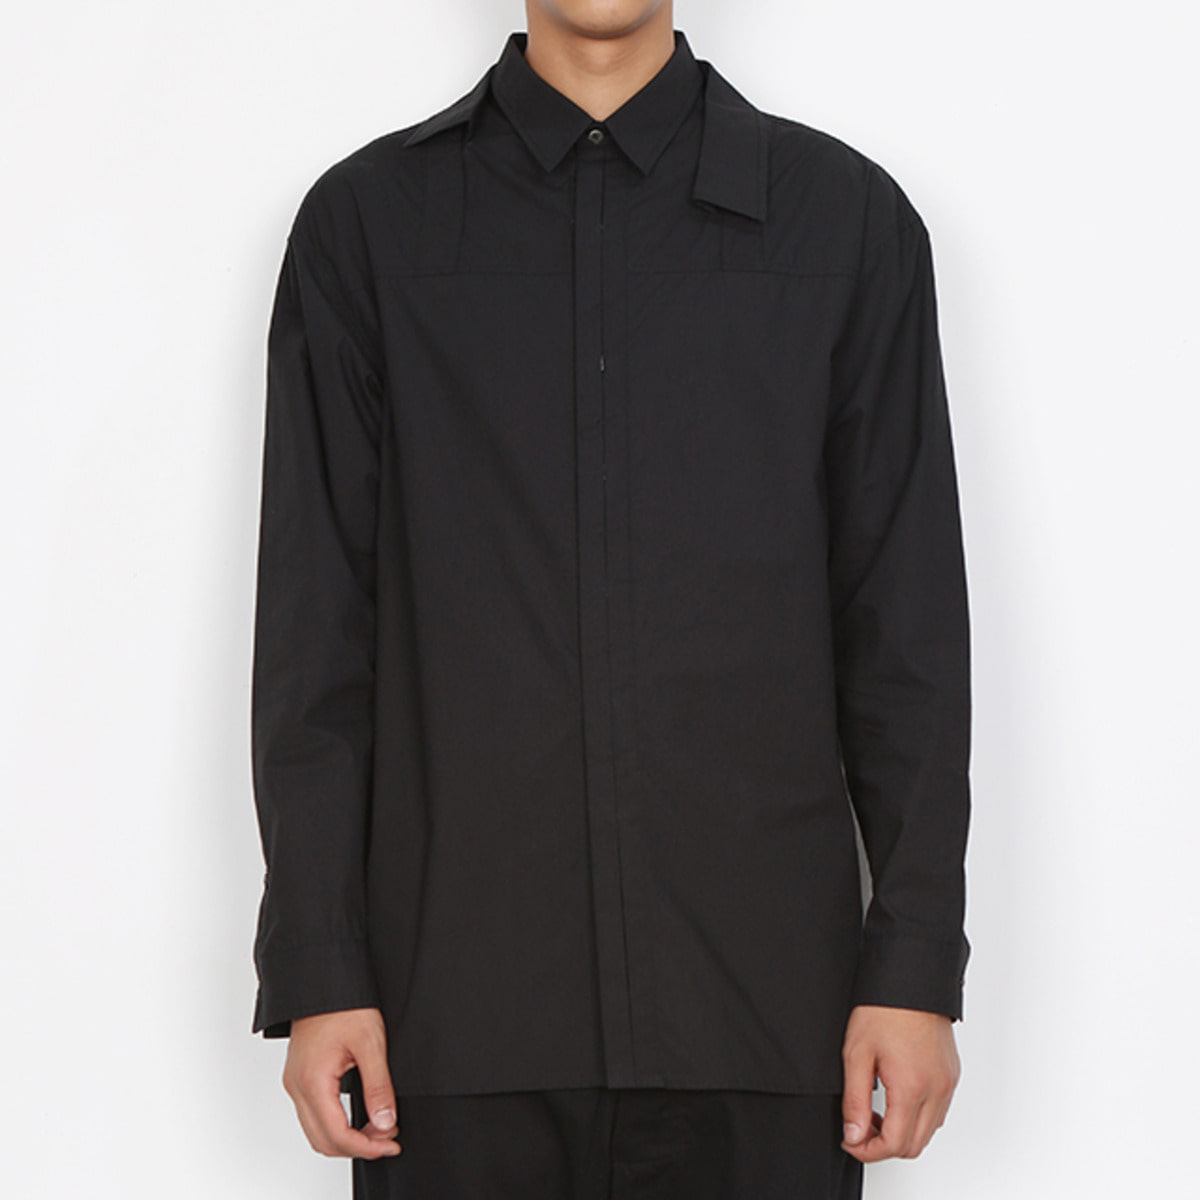 ASYMMETRY TWO COLLARS SHIRTS